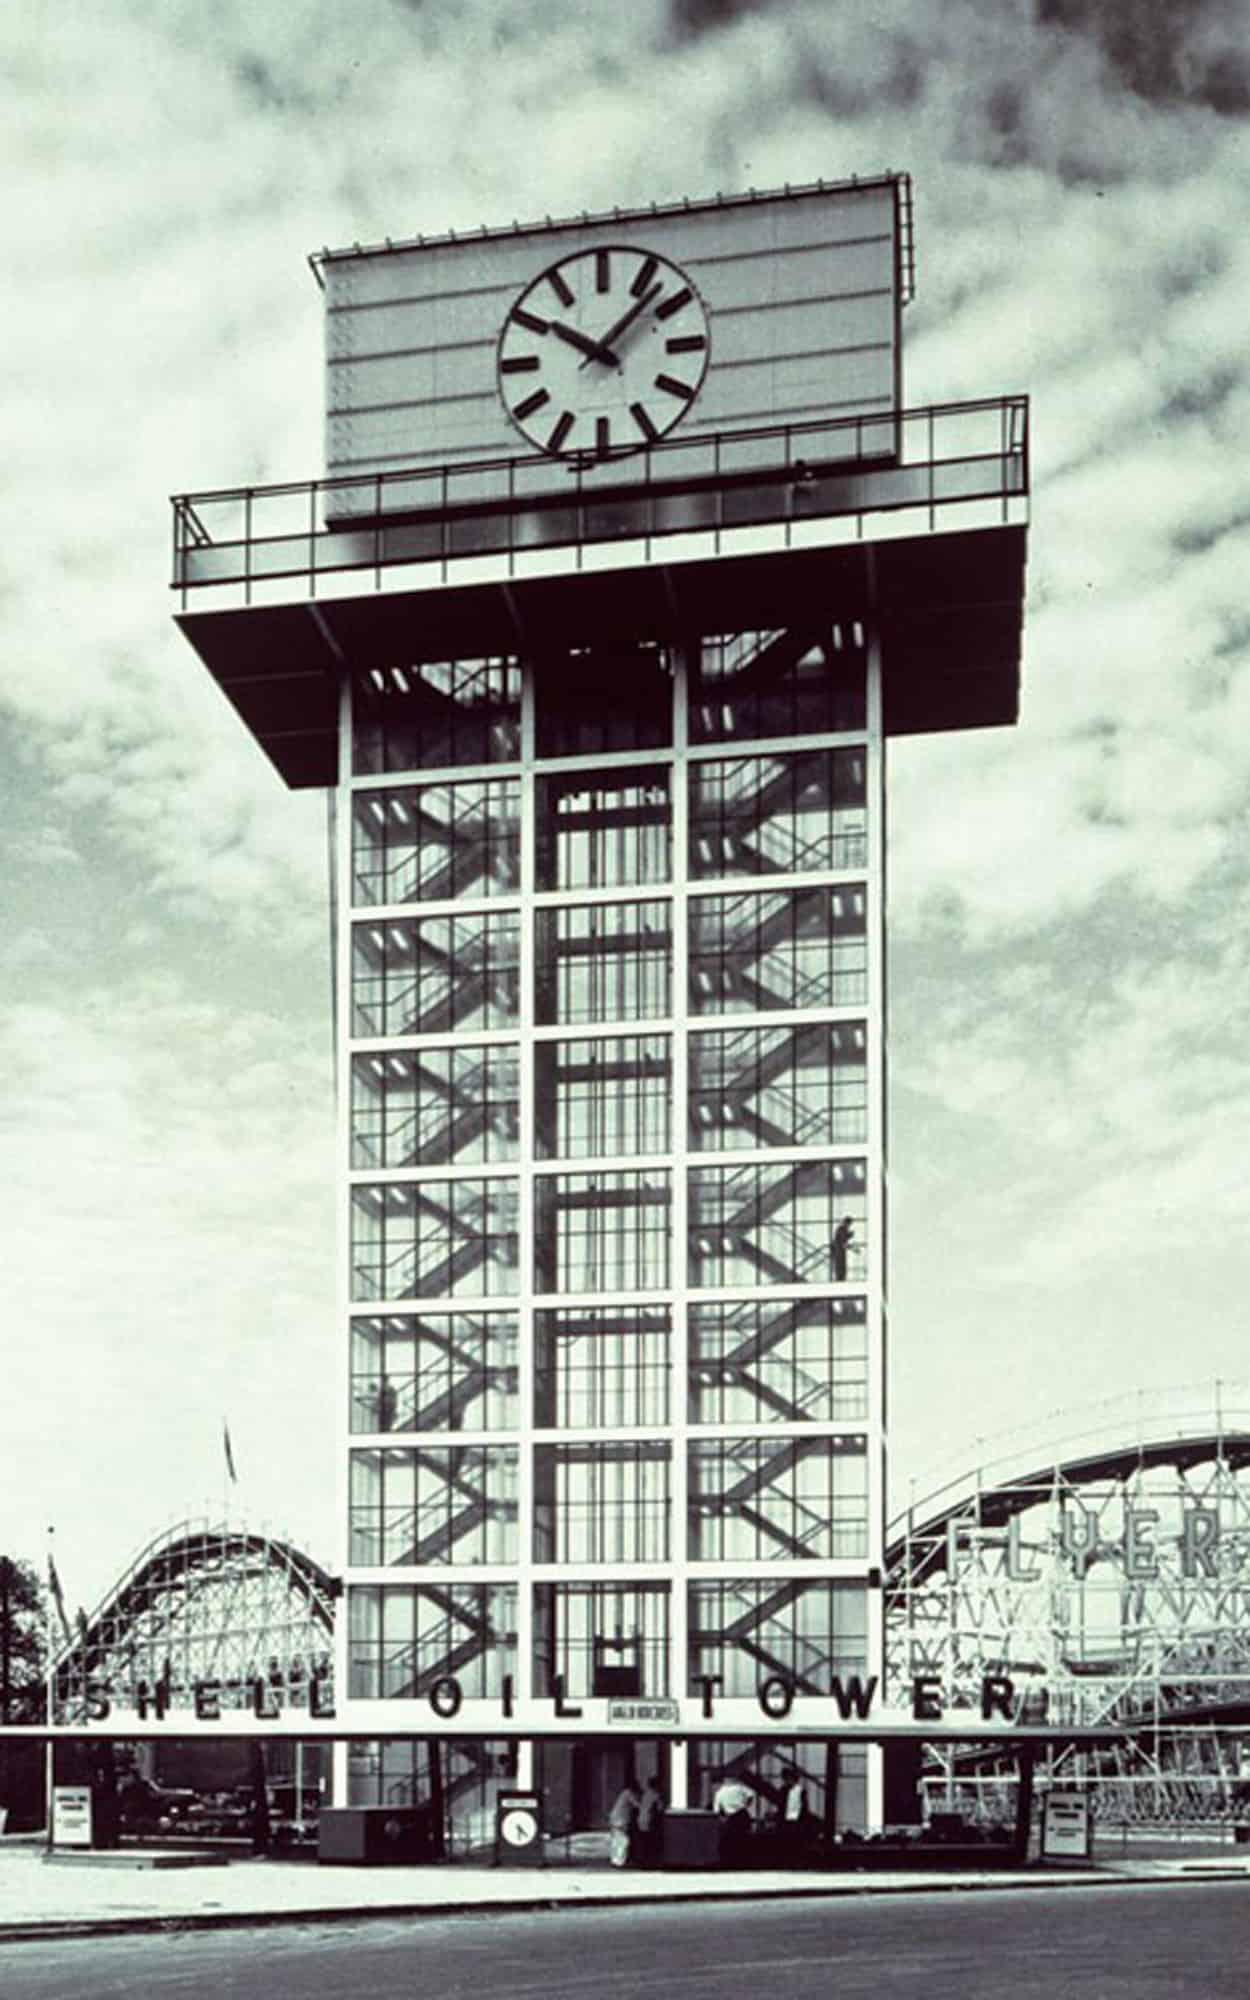 The tower was a visual landmark within the CNE grounds emphasized by its axial relationship with the 1927 Princes' Gate (City of Toronto Archives, Series 1465, Fl0150, id0013)